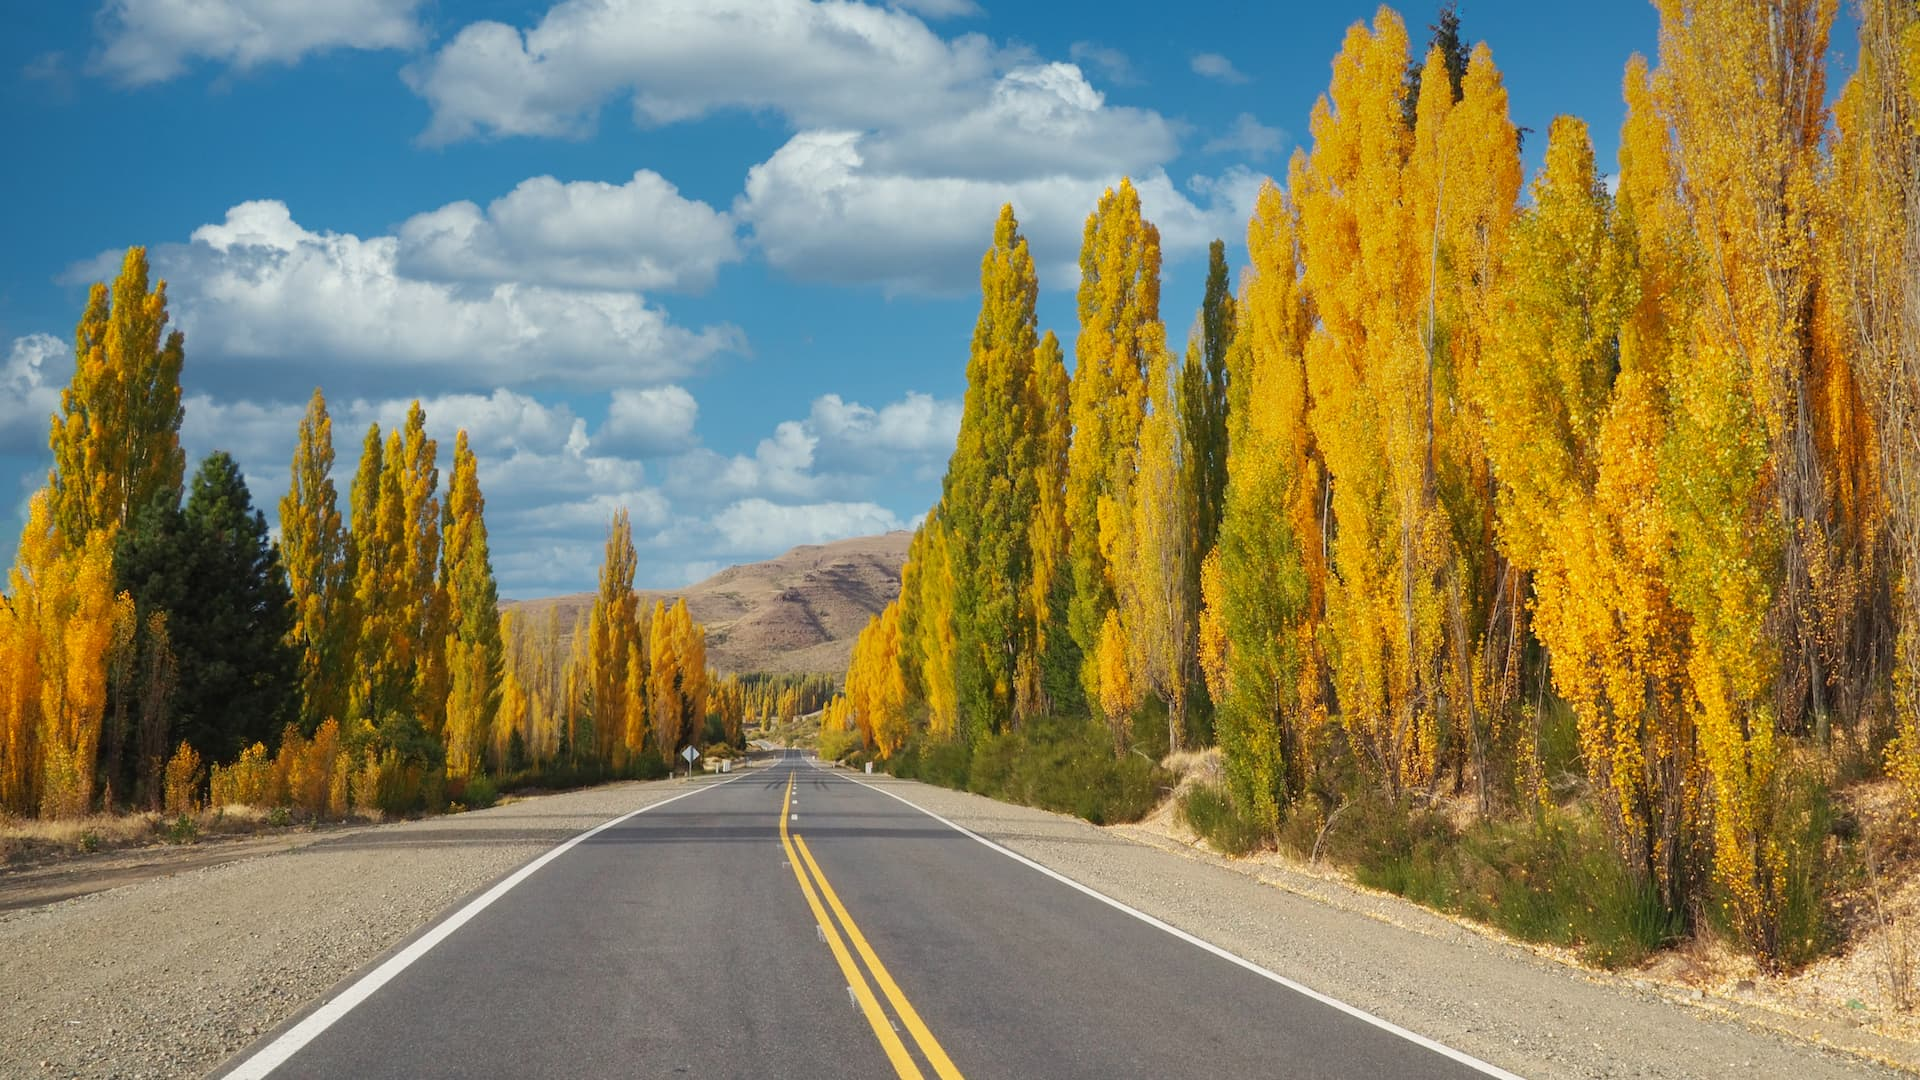 A road with two yellow lines running down the middle with yellow-leaved trees on either side